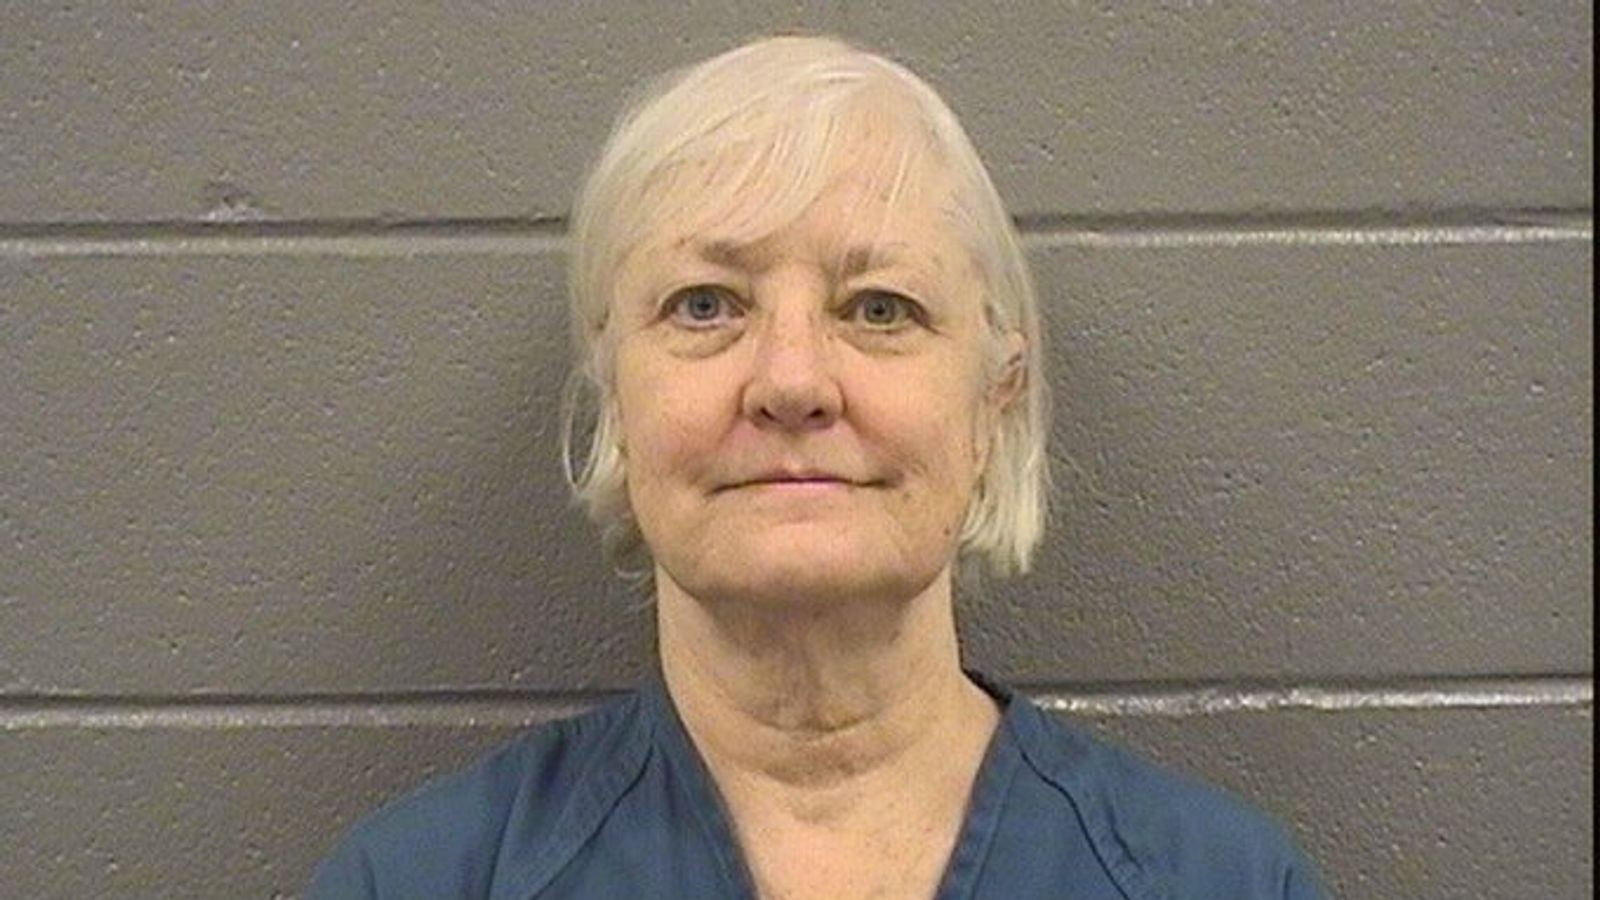 Serial Stowaway, Marilyn Hartman, 69, who has taken more than 30 flights over 19-years with no ticket, is arrested for attempting to sneak onto another flight